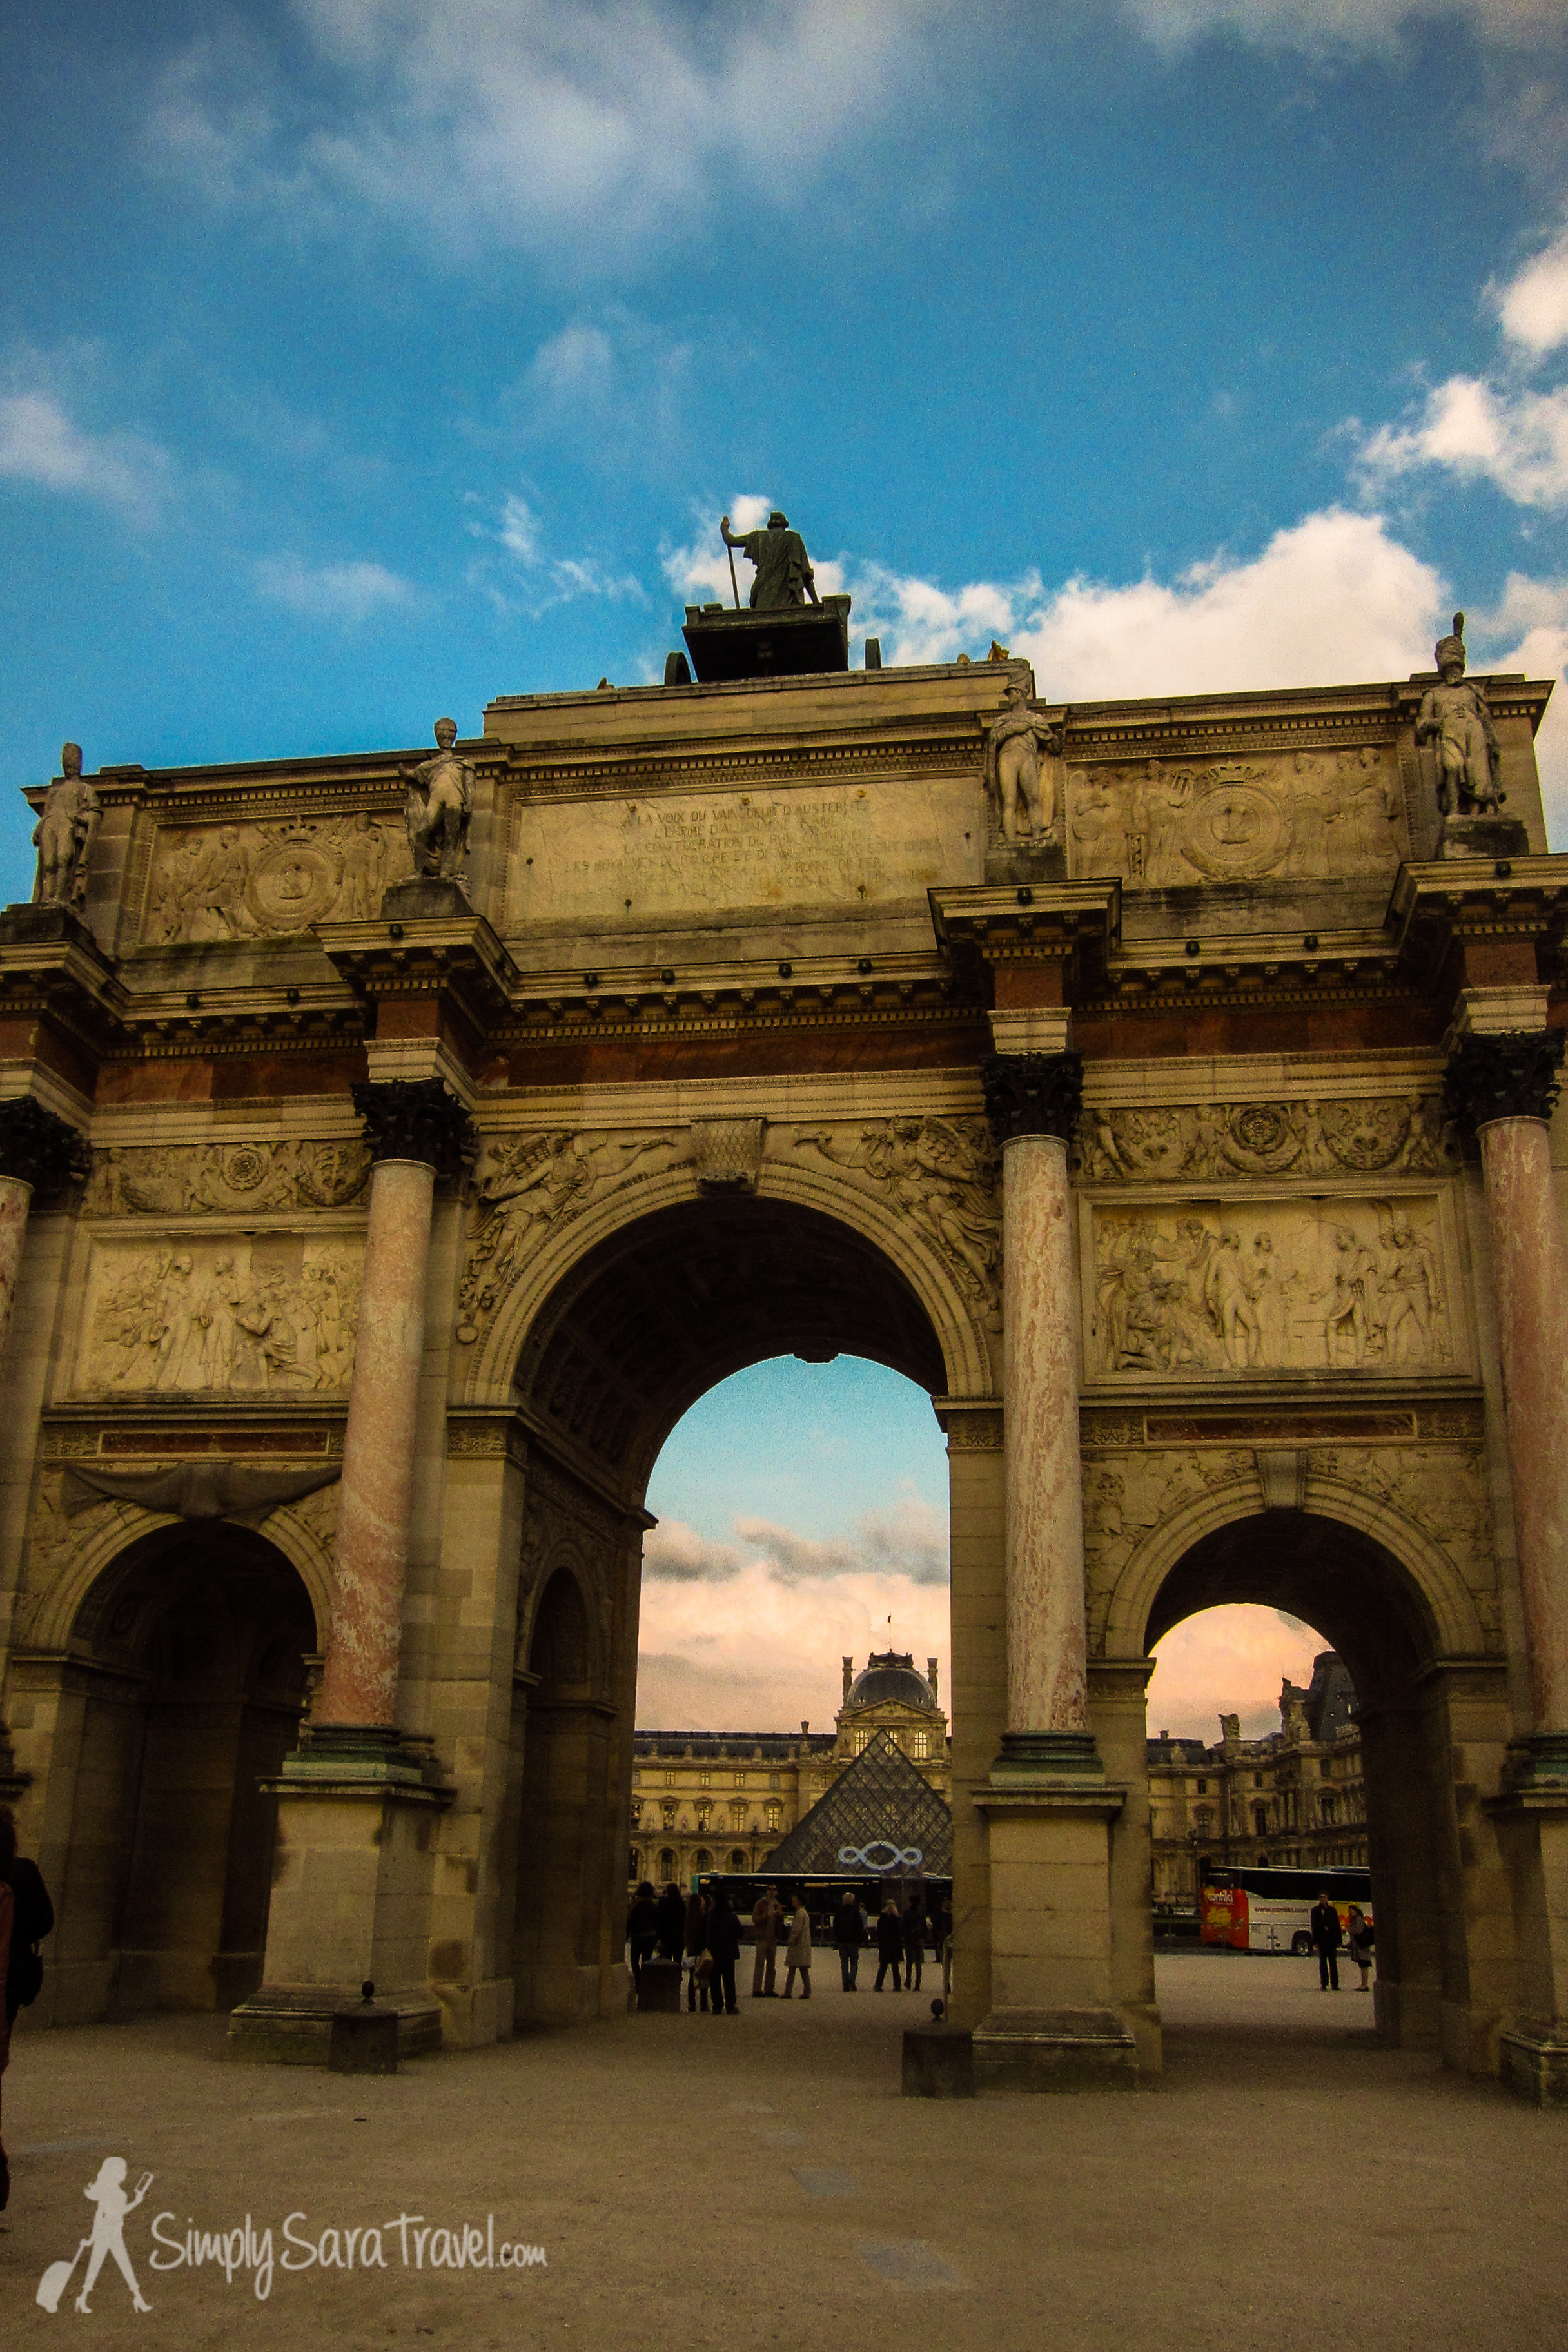 This picture of theArc de Triomphe du Carrousel also brings back memories of the walk back to our apartment where my surprise birthday party was about to begin. Michael had to try to spur me along despite all the pictures I wanted to take on the walk back!